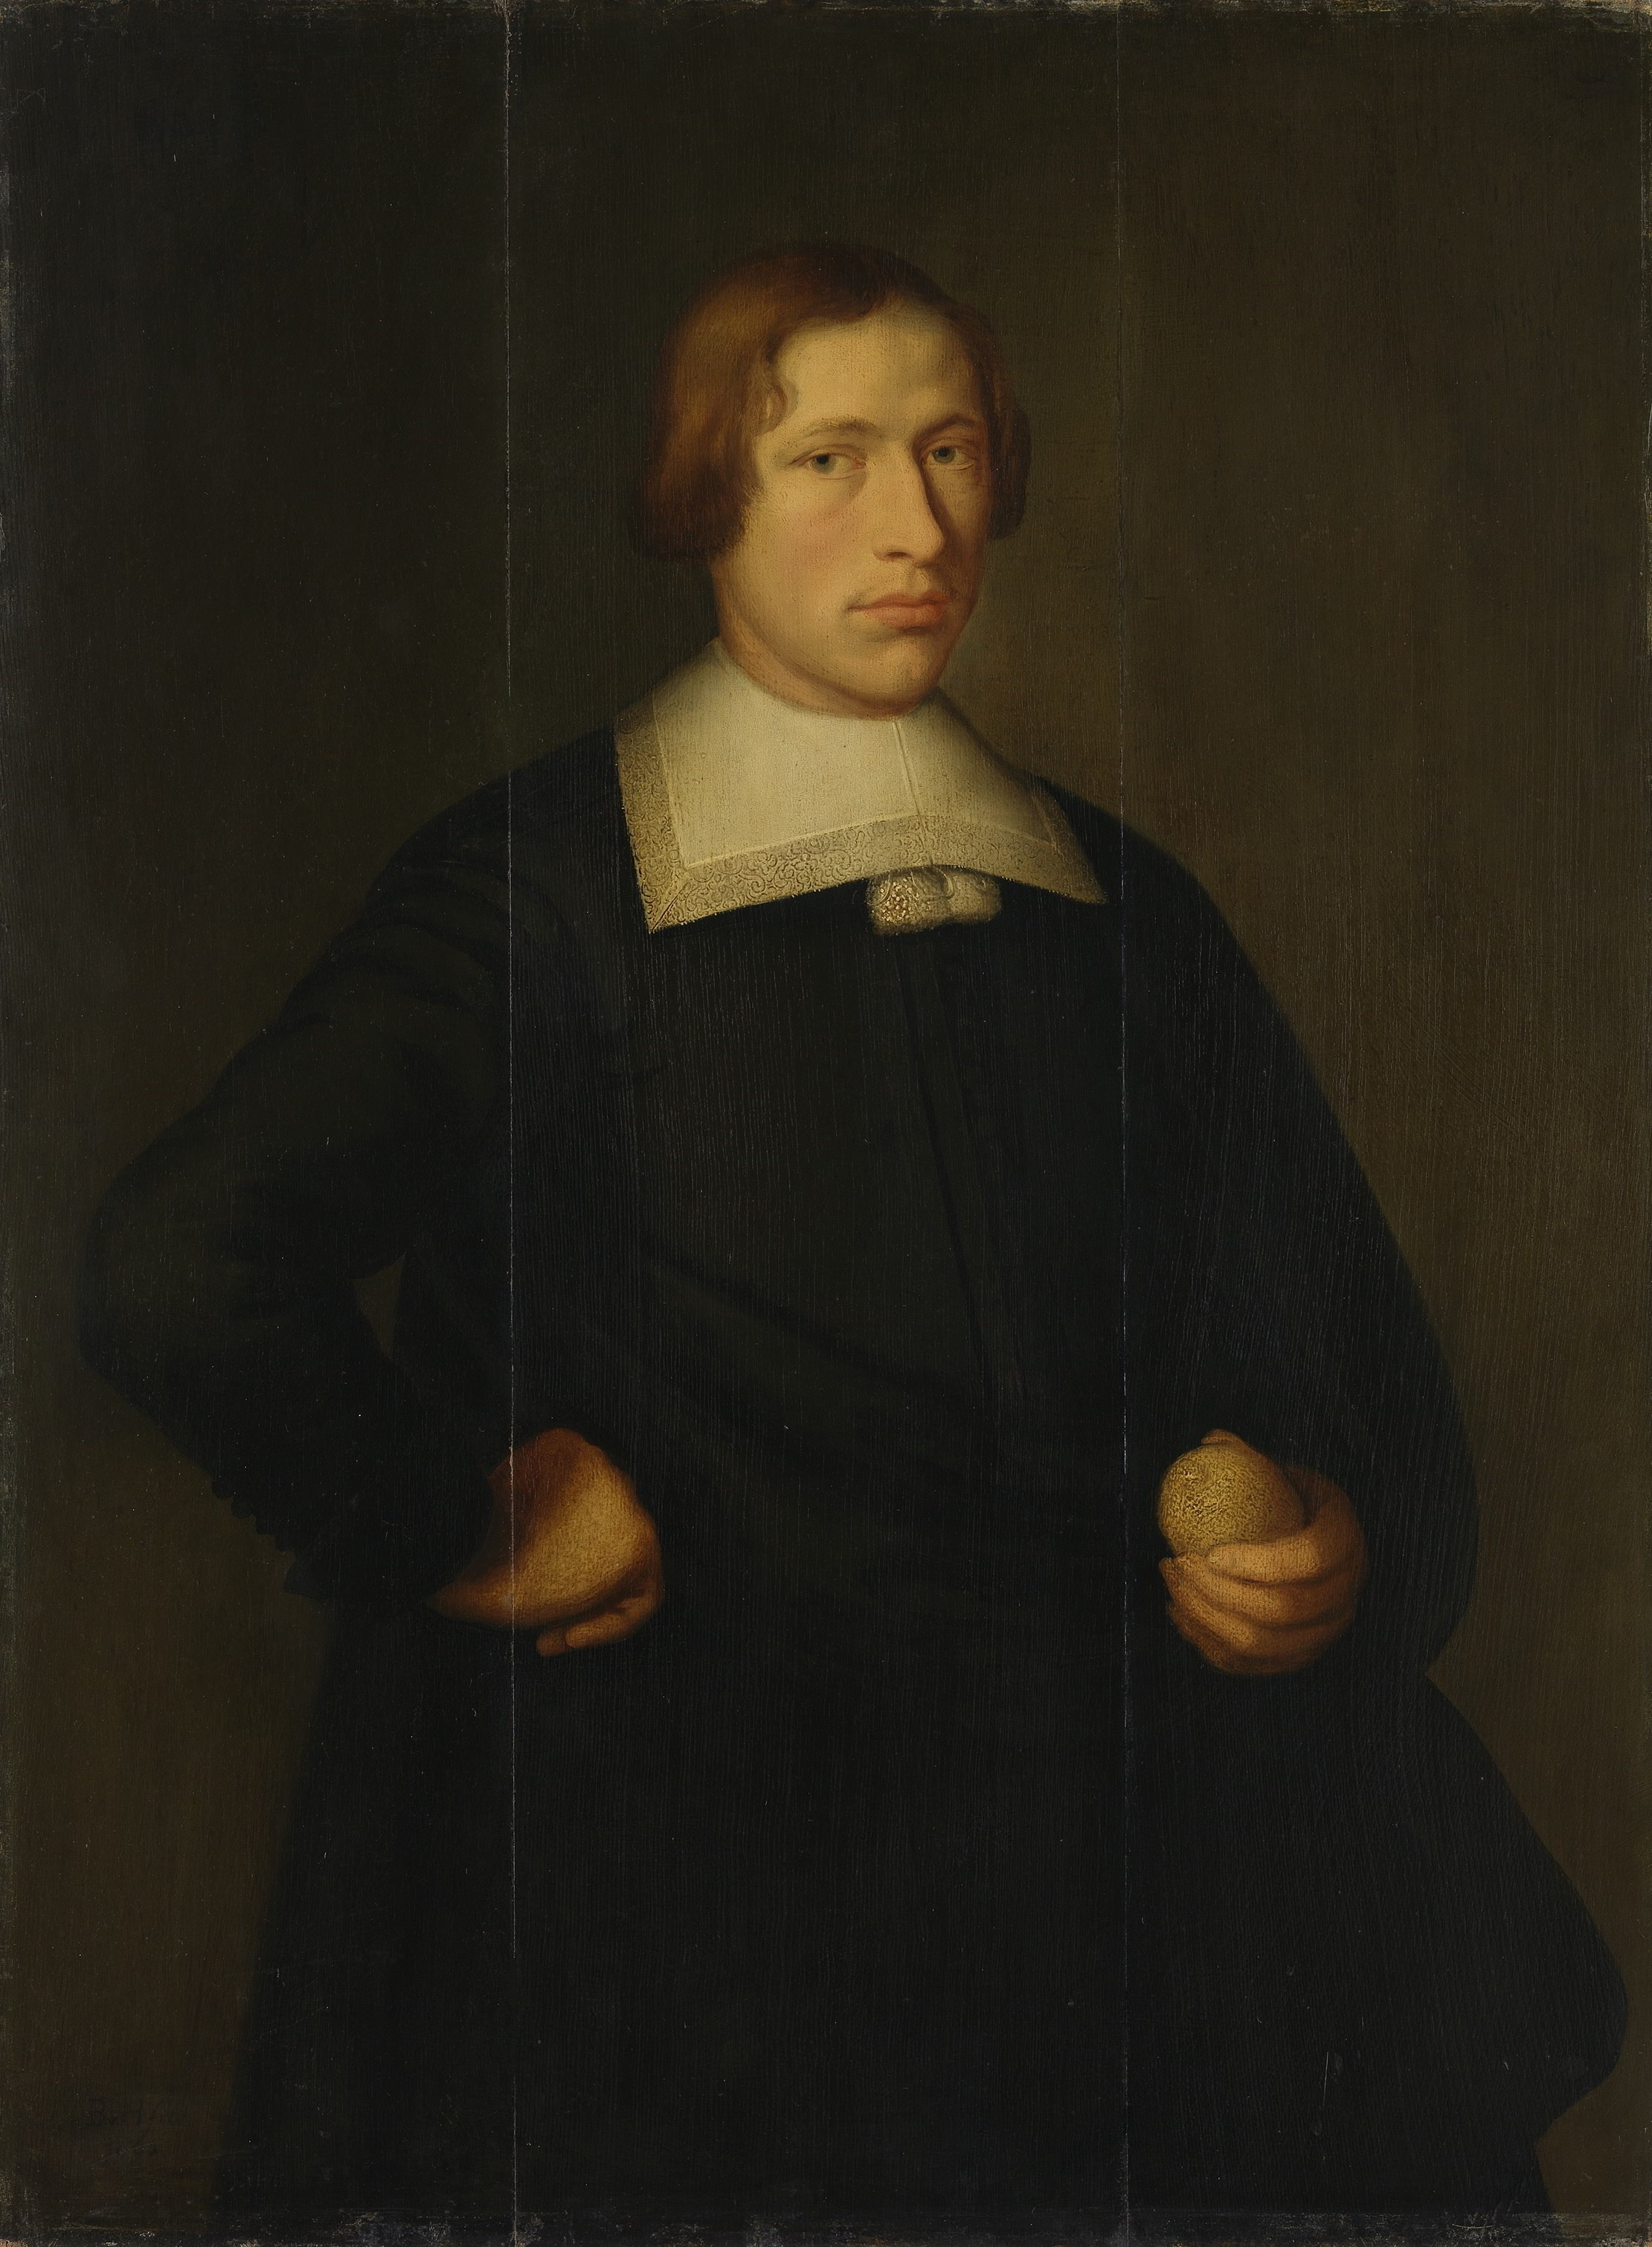 Monogrammist B.v.H. (probably Bartholomeus van der Helst), <em>Portrait of a Young Man with a Lemon</em>, 1660 Bayerische Staatsgemäldesammlungen, Munich